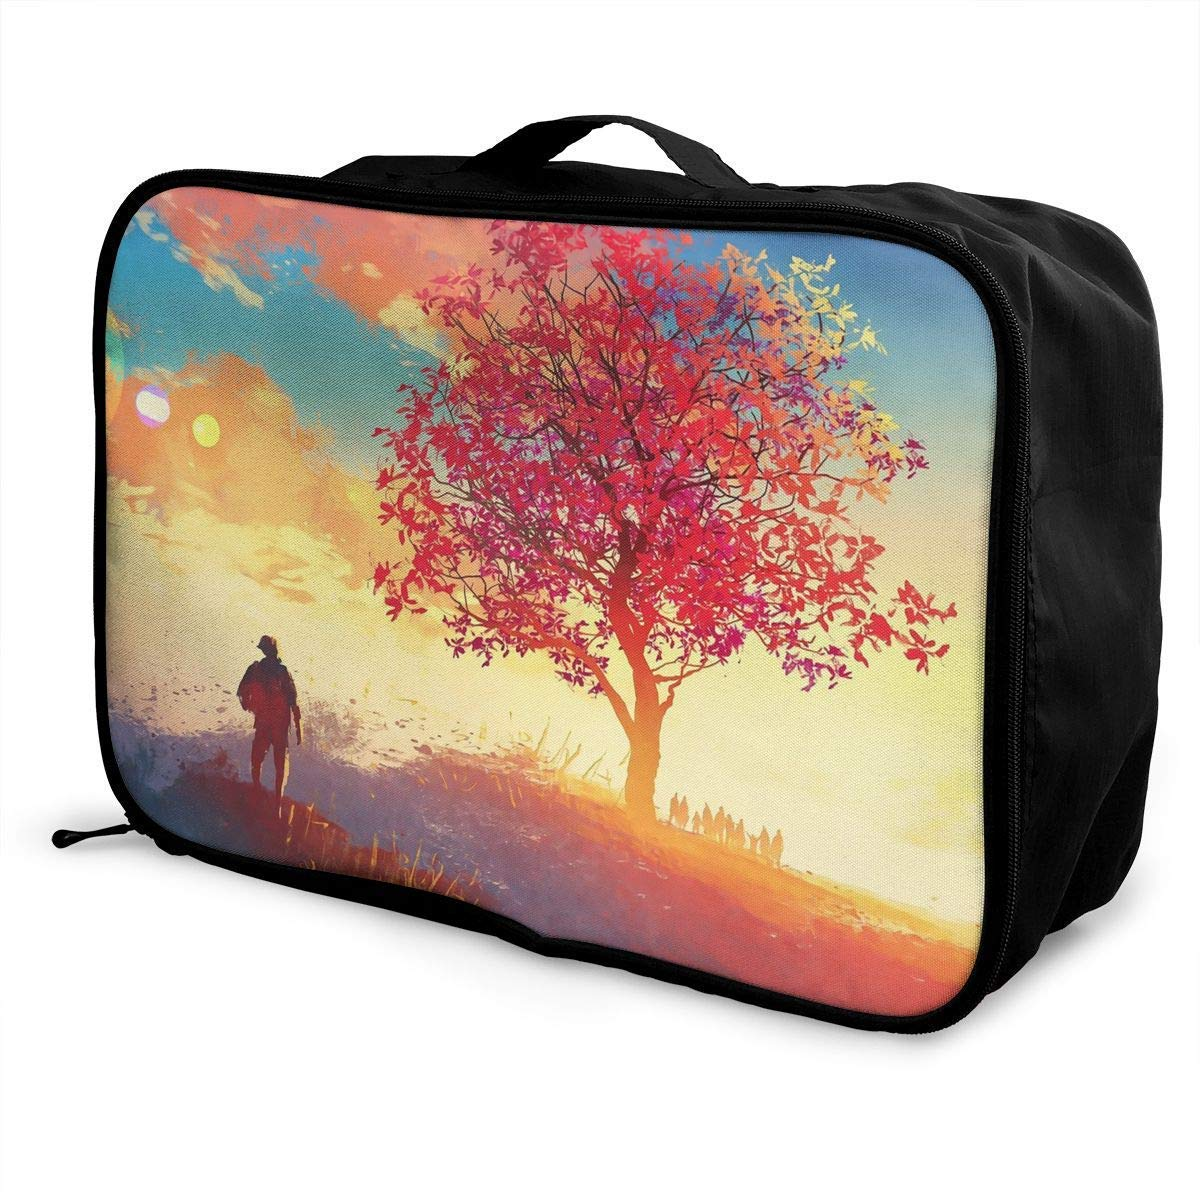 Portable Luggage Duffel Bag Autumn Sunrise Travel Bags Carry-on in Trolley Handle JTRVW Luggage Bags for Travel